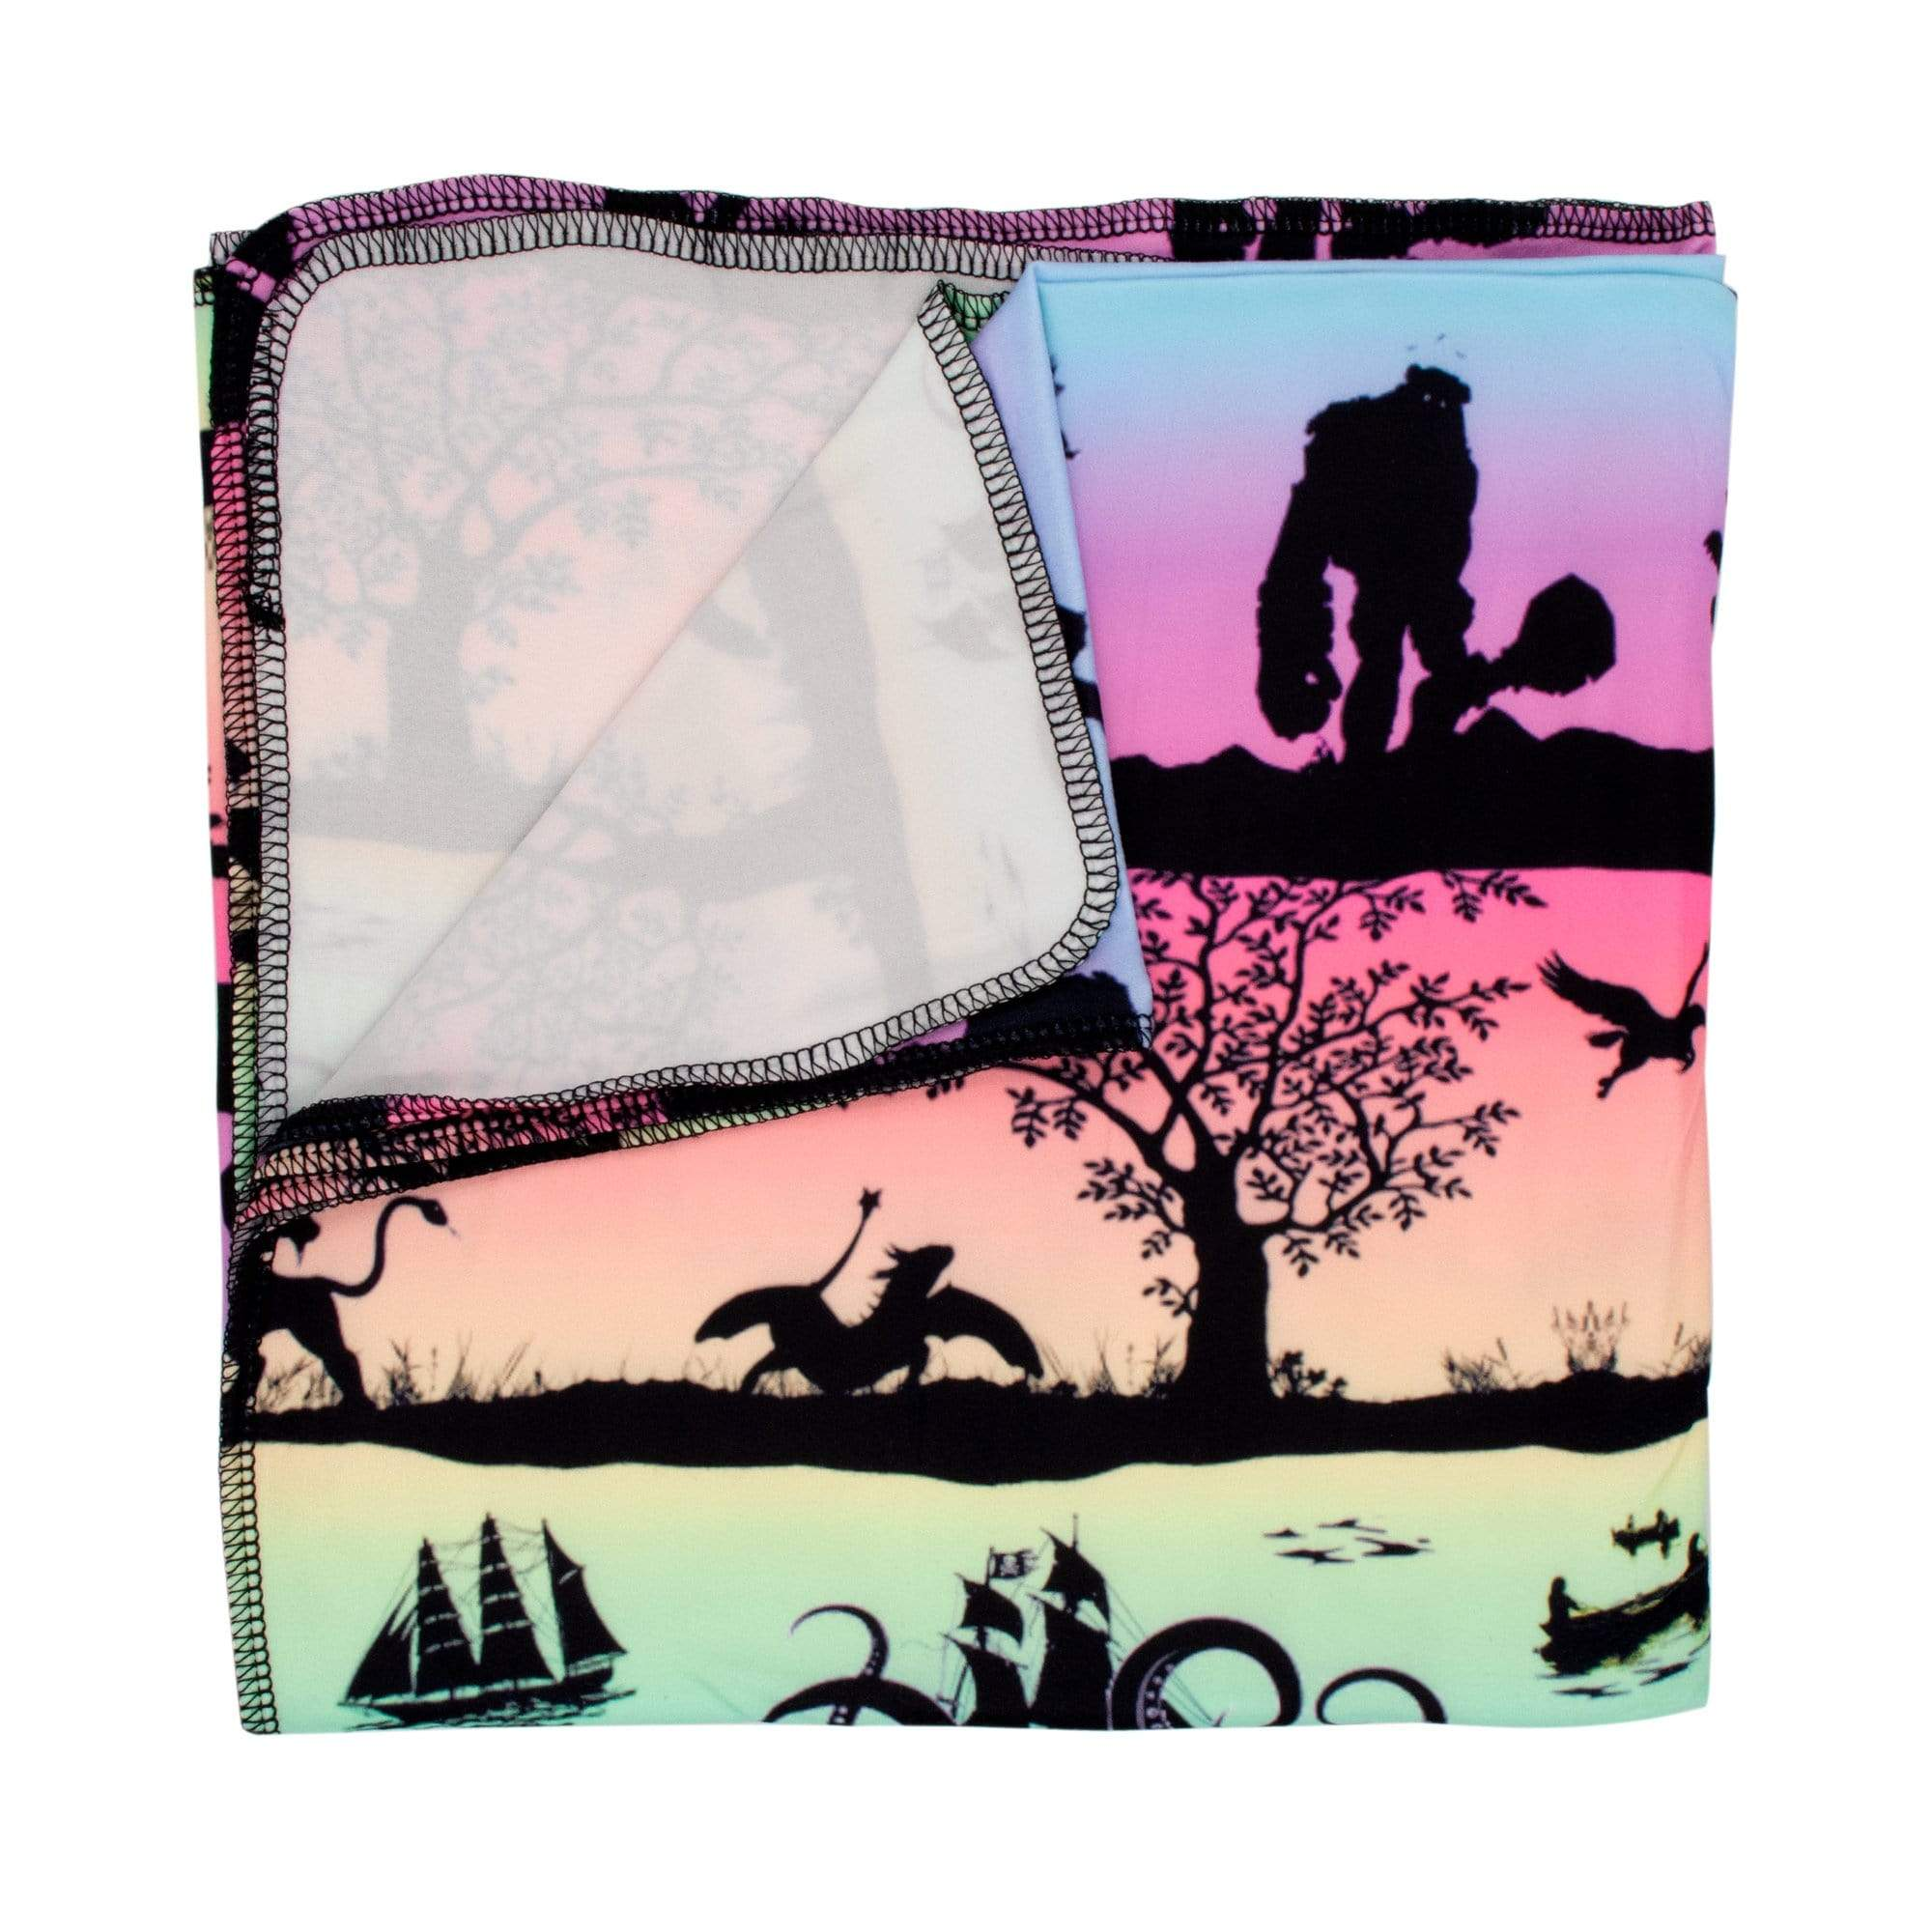 Nicki's Diapers Stretchy Swaddle Blanket - Storybook Sunrise